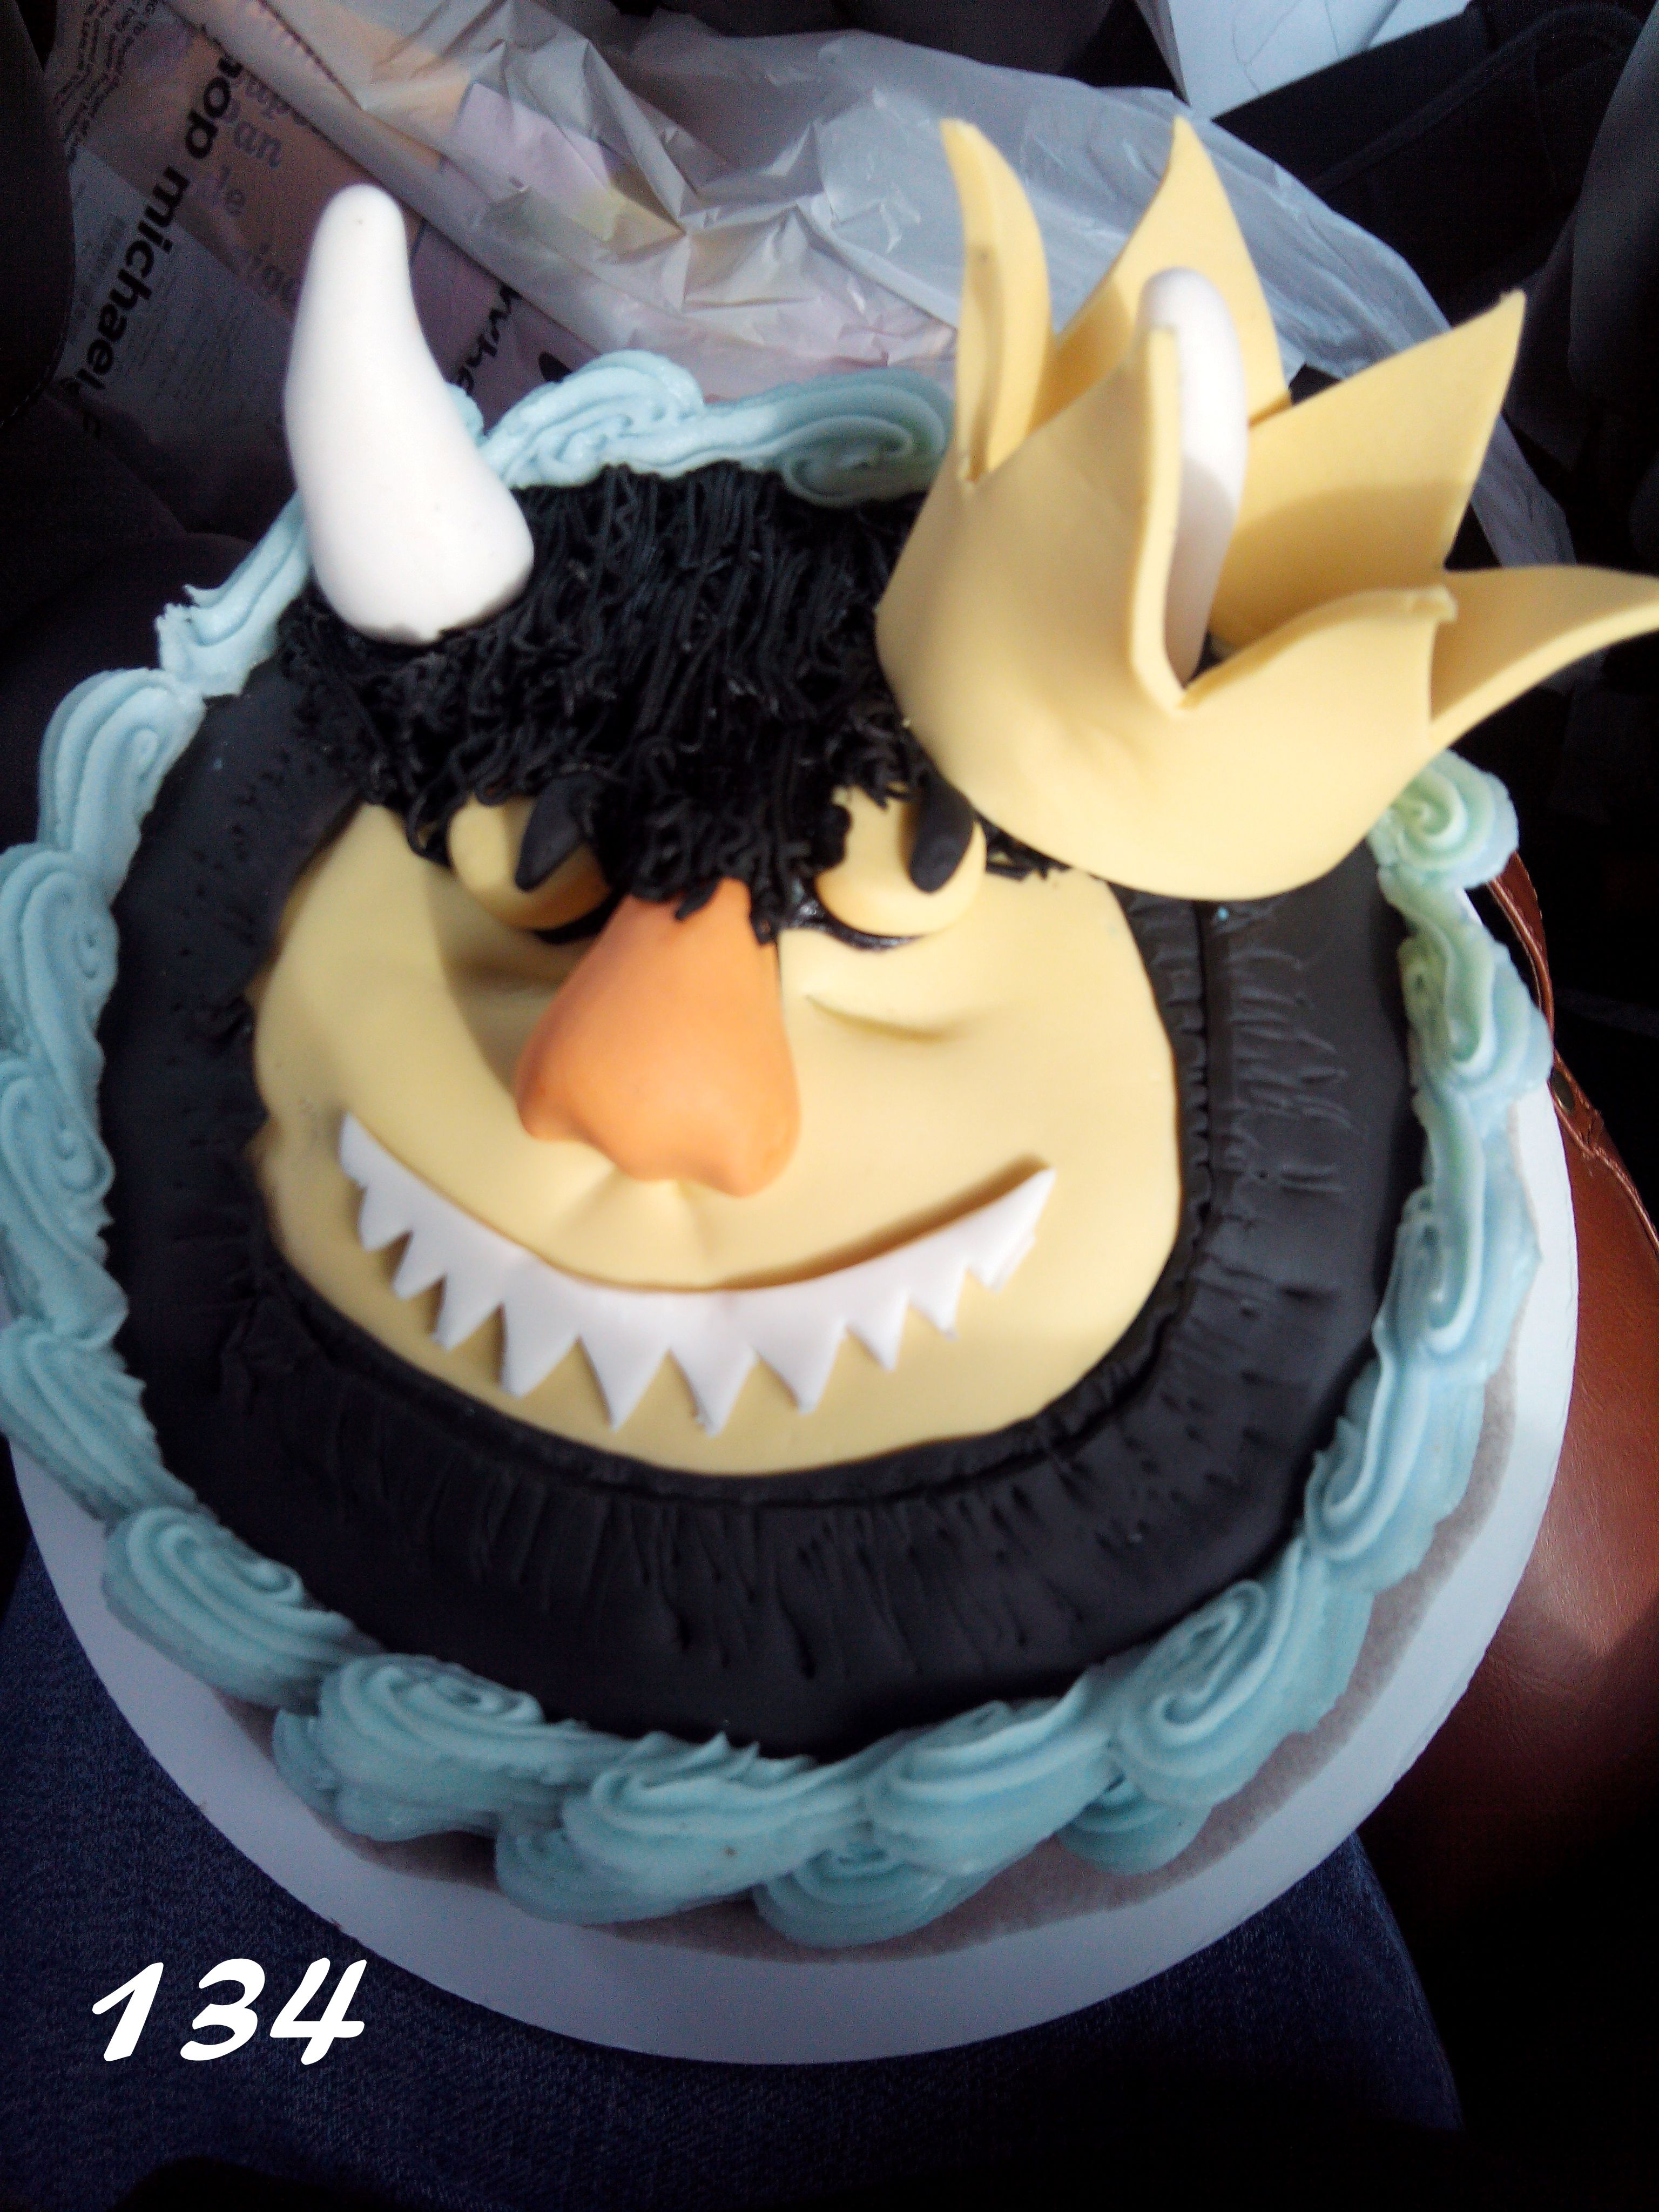 Where the wild things are!  You can get your Wild Cake too!